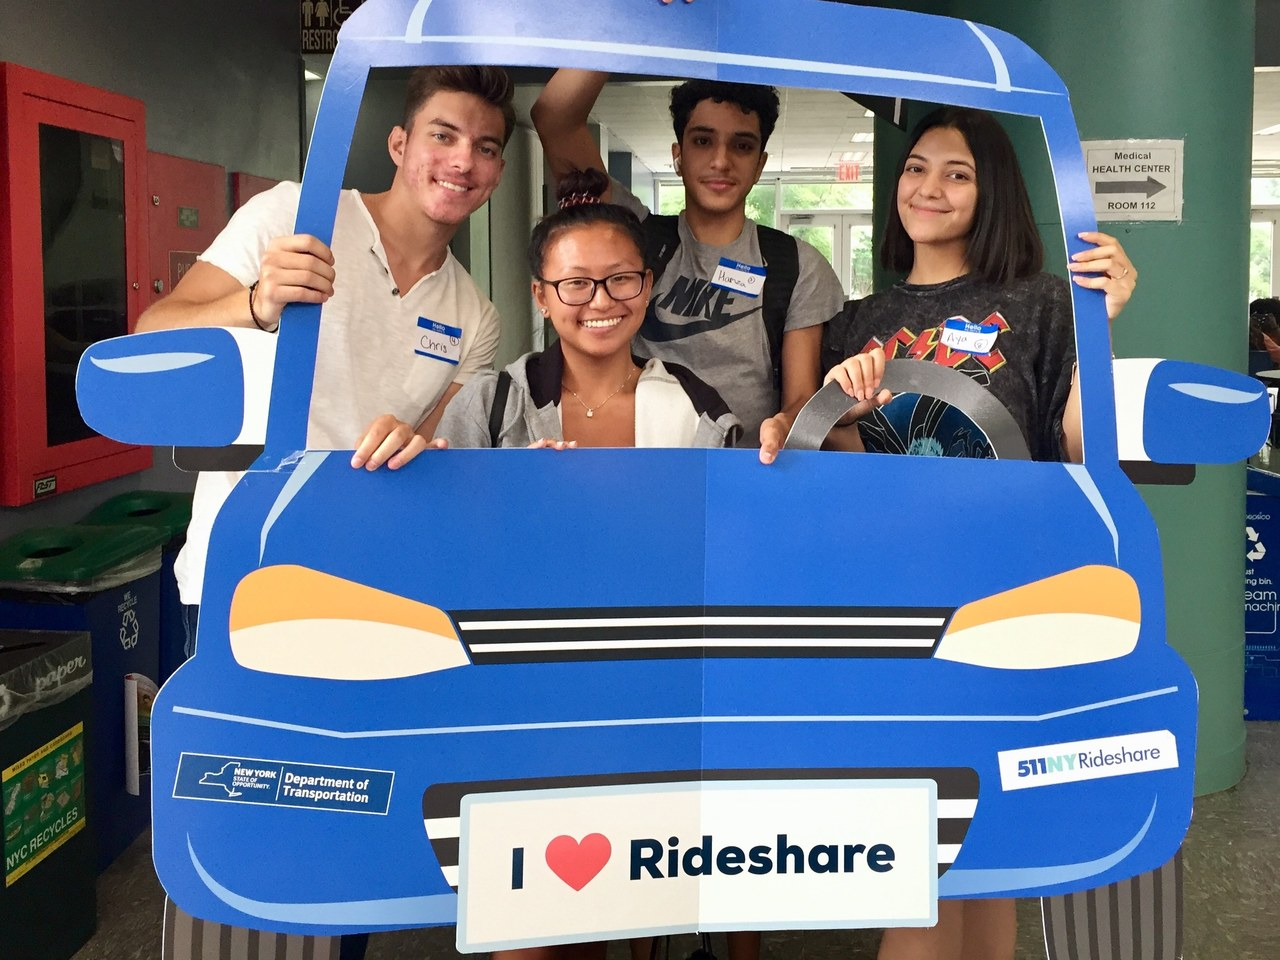 Group of students in a cardboard cutout of a car